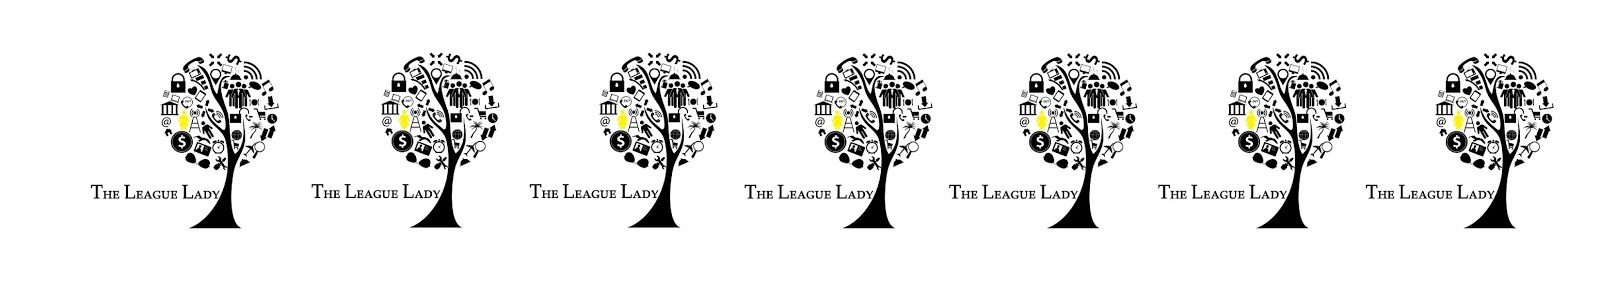 The League Lady